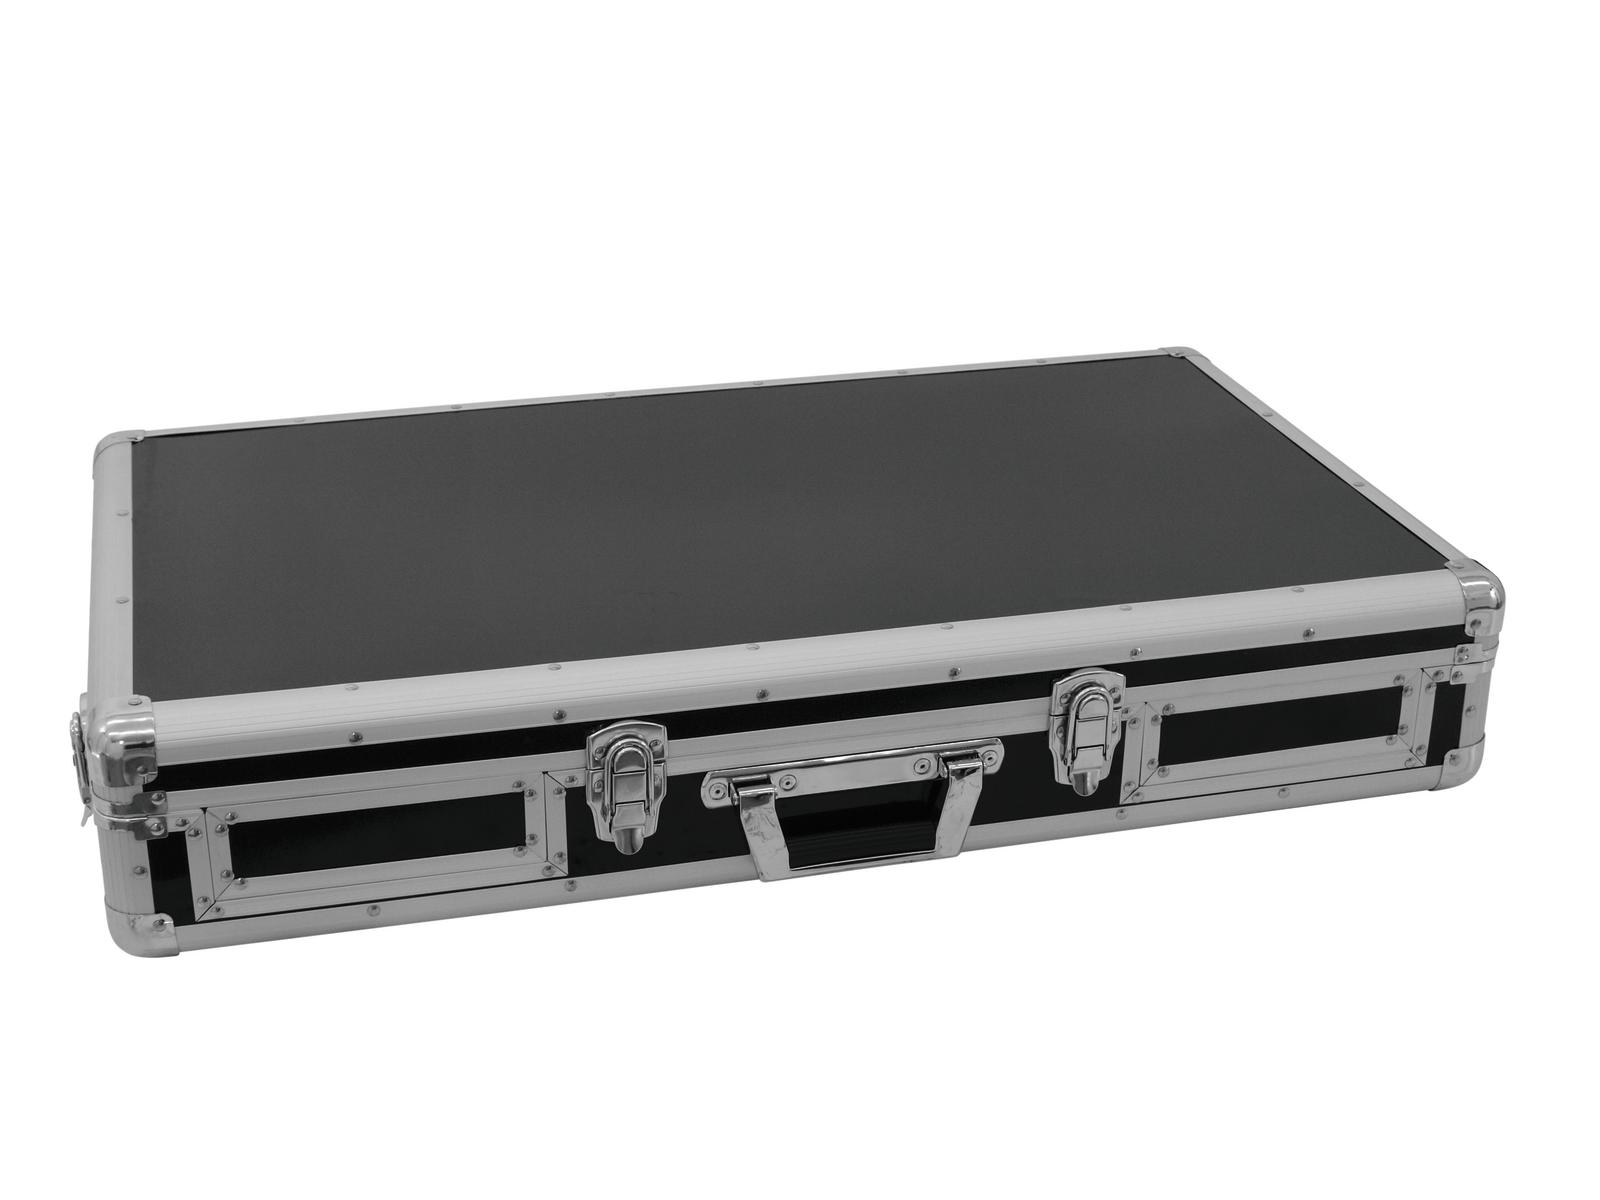 Flight Case Custodia Per Console Cdj Mixer Pc ROADINGER M-19 DIGI-1